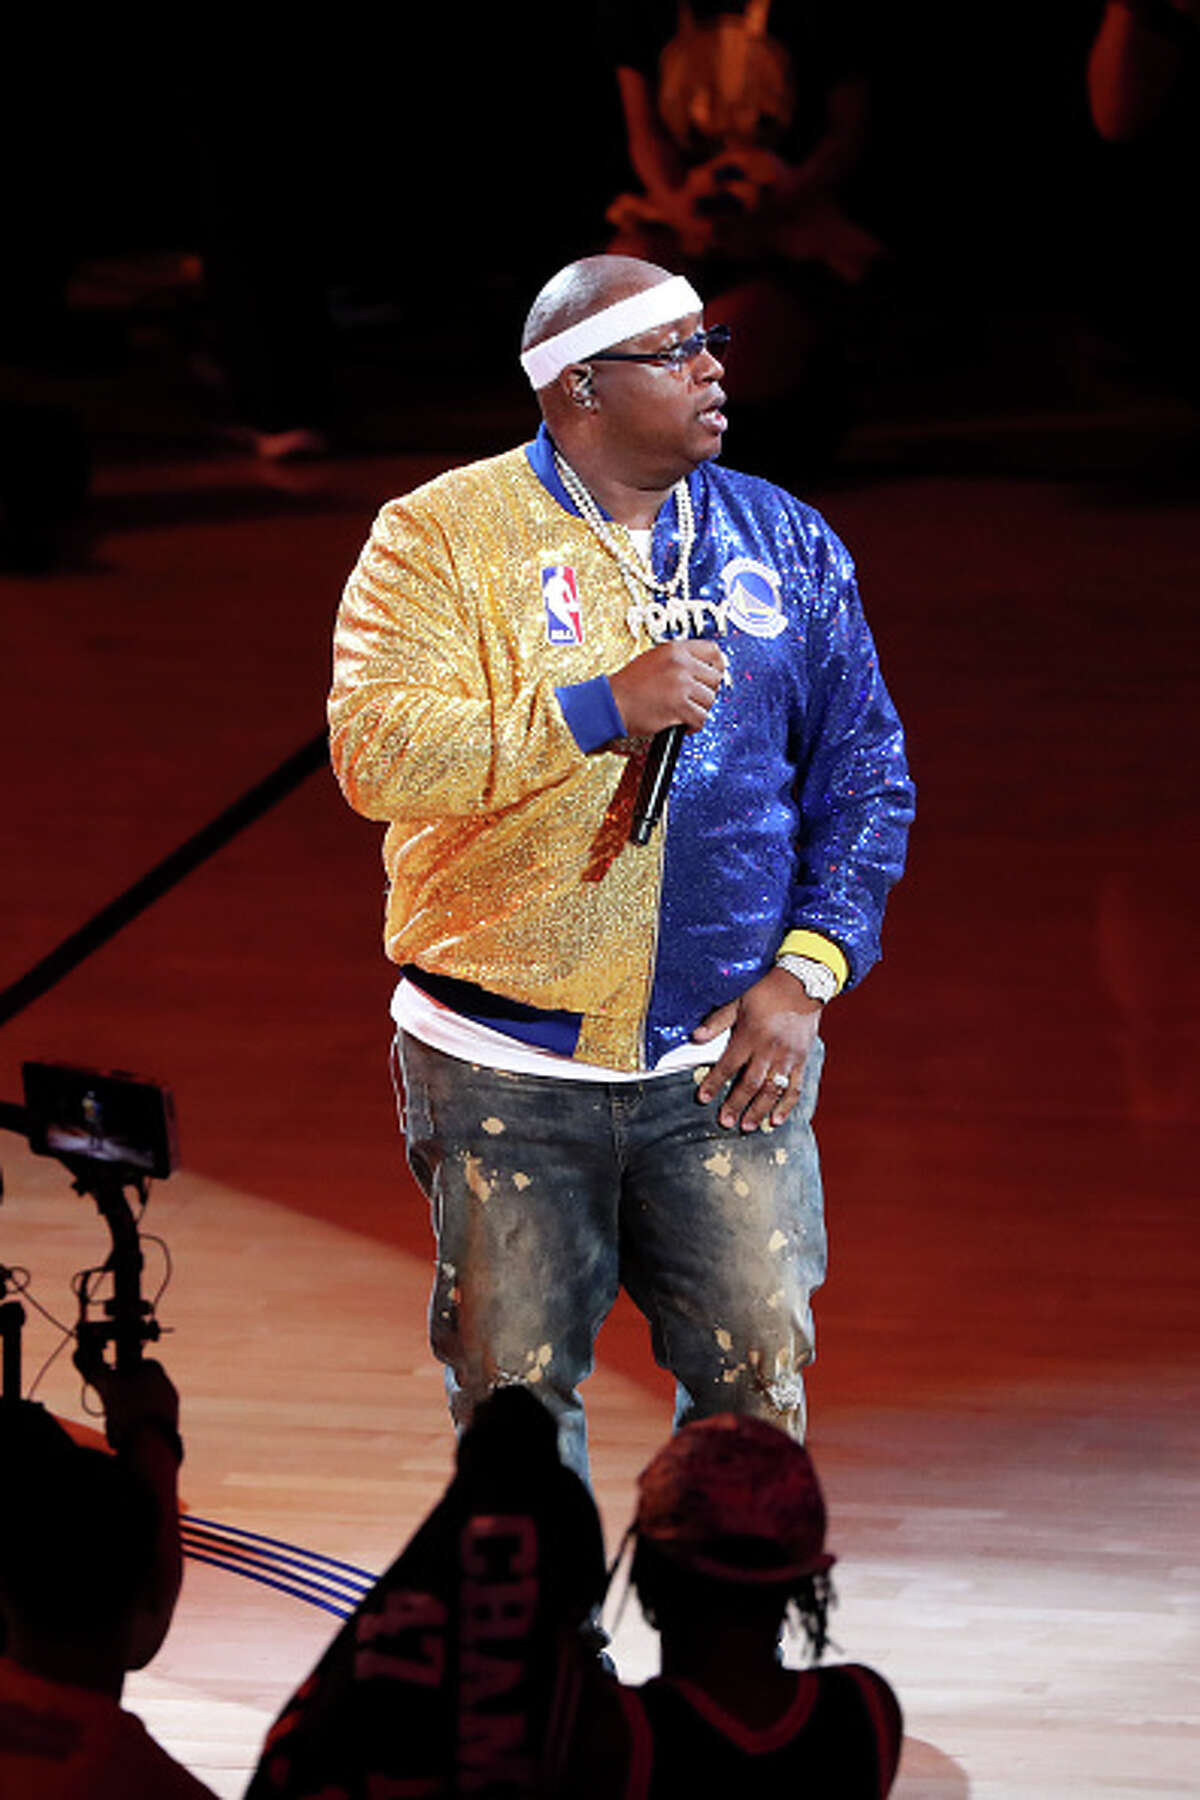 Rapper E-40 performs during halftime during the game between the Toronto Raptors and Golden State Warriors in Game Six of the NBA Finals on June 13, 2019 at ORACLE Arena in Oakland, California.